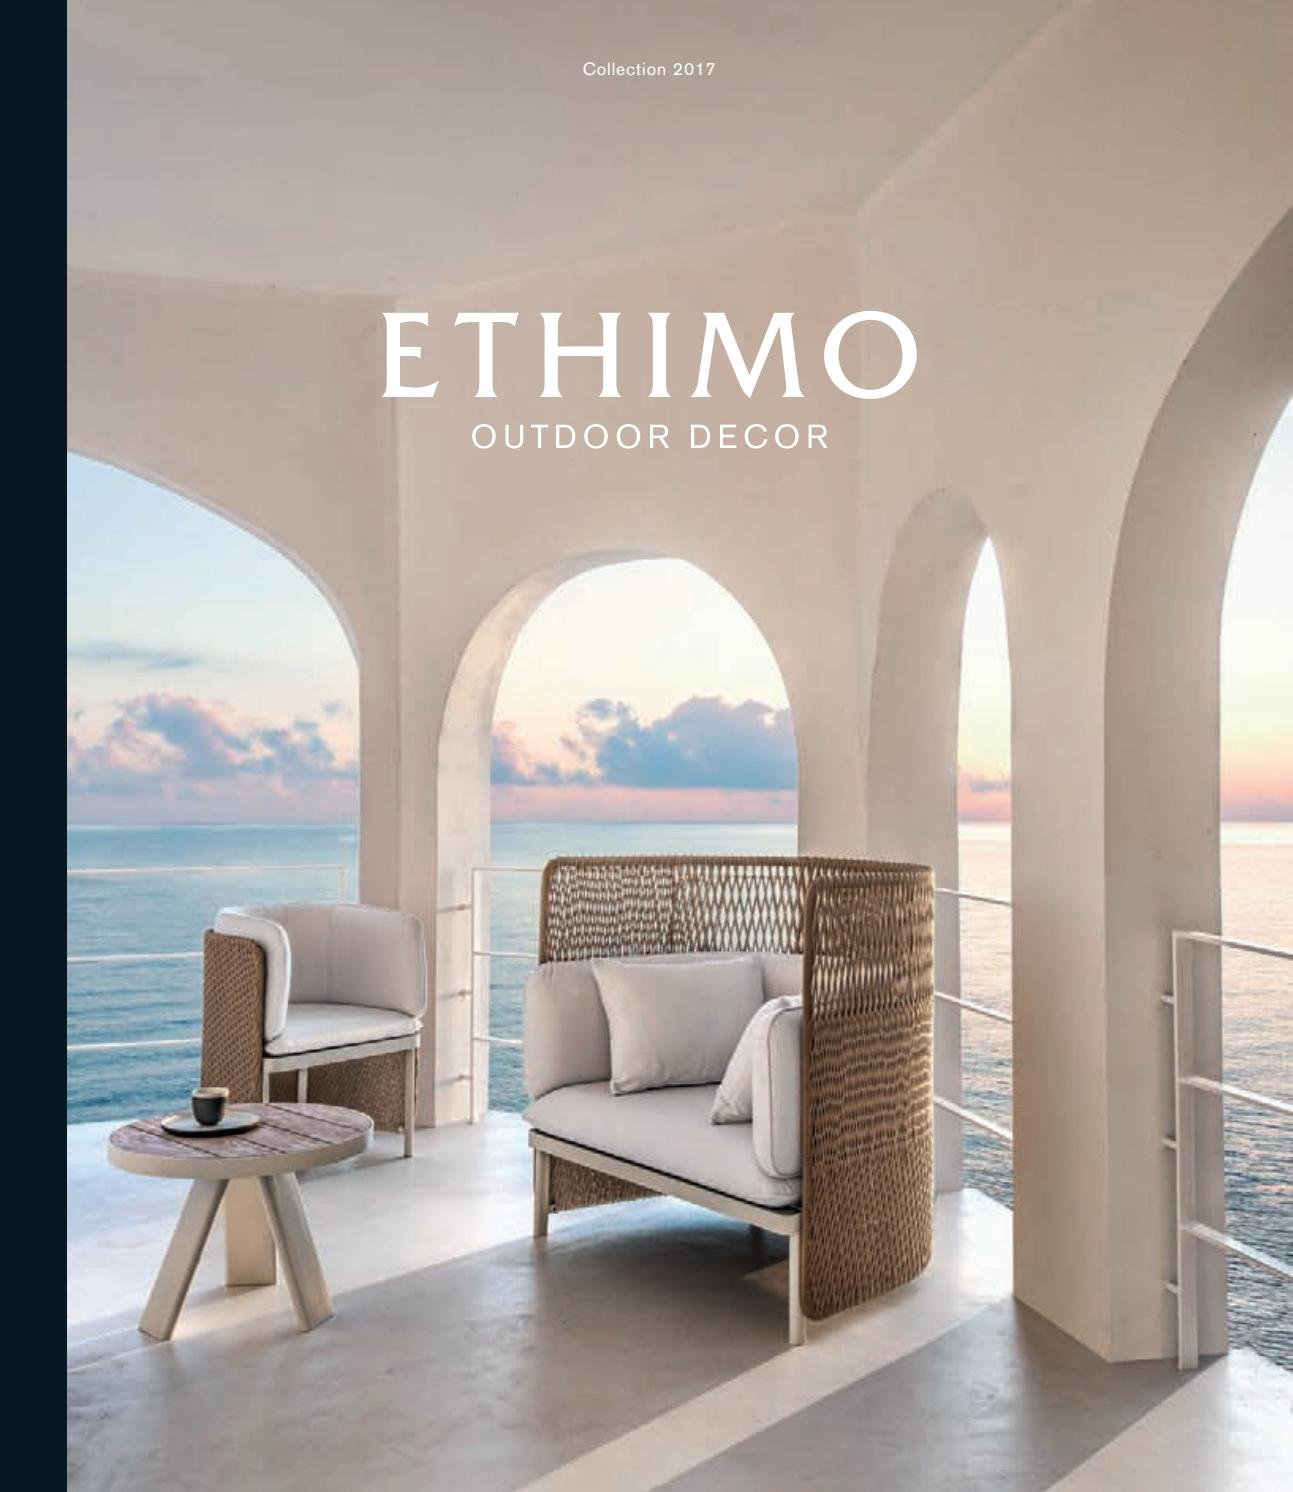 Come Abbinare Sedie Diverse ethimo collection 2017 by ethimo - issuu